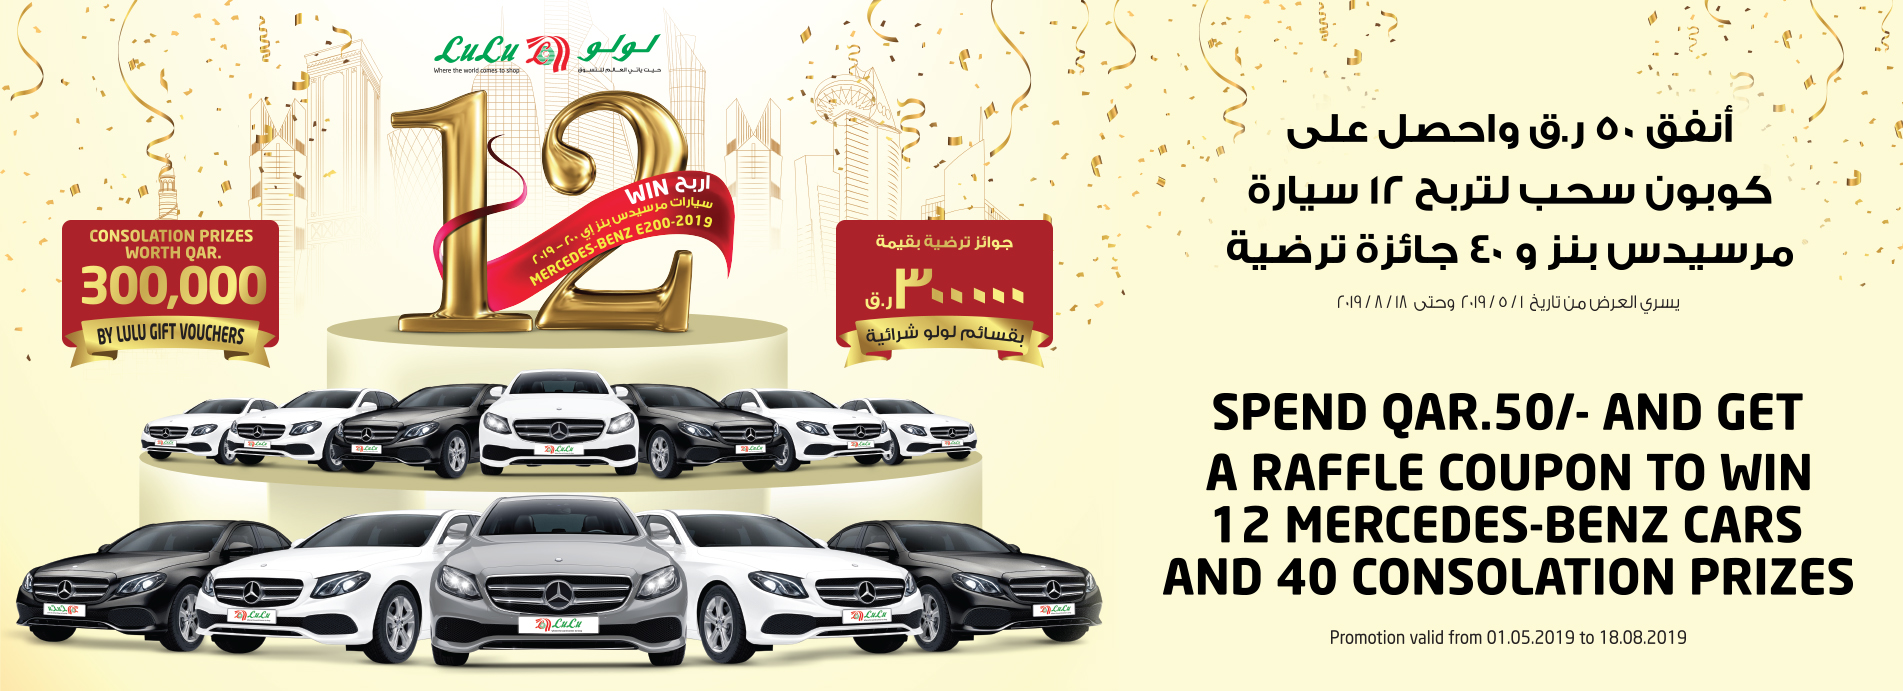 LuLu Hypermarket Qatar: Best deals & offers on Groceries